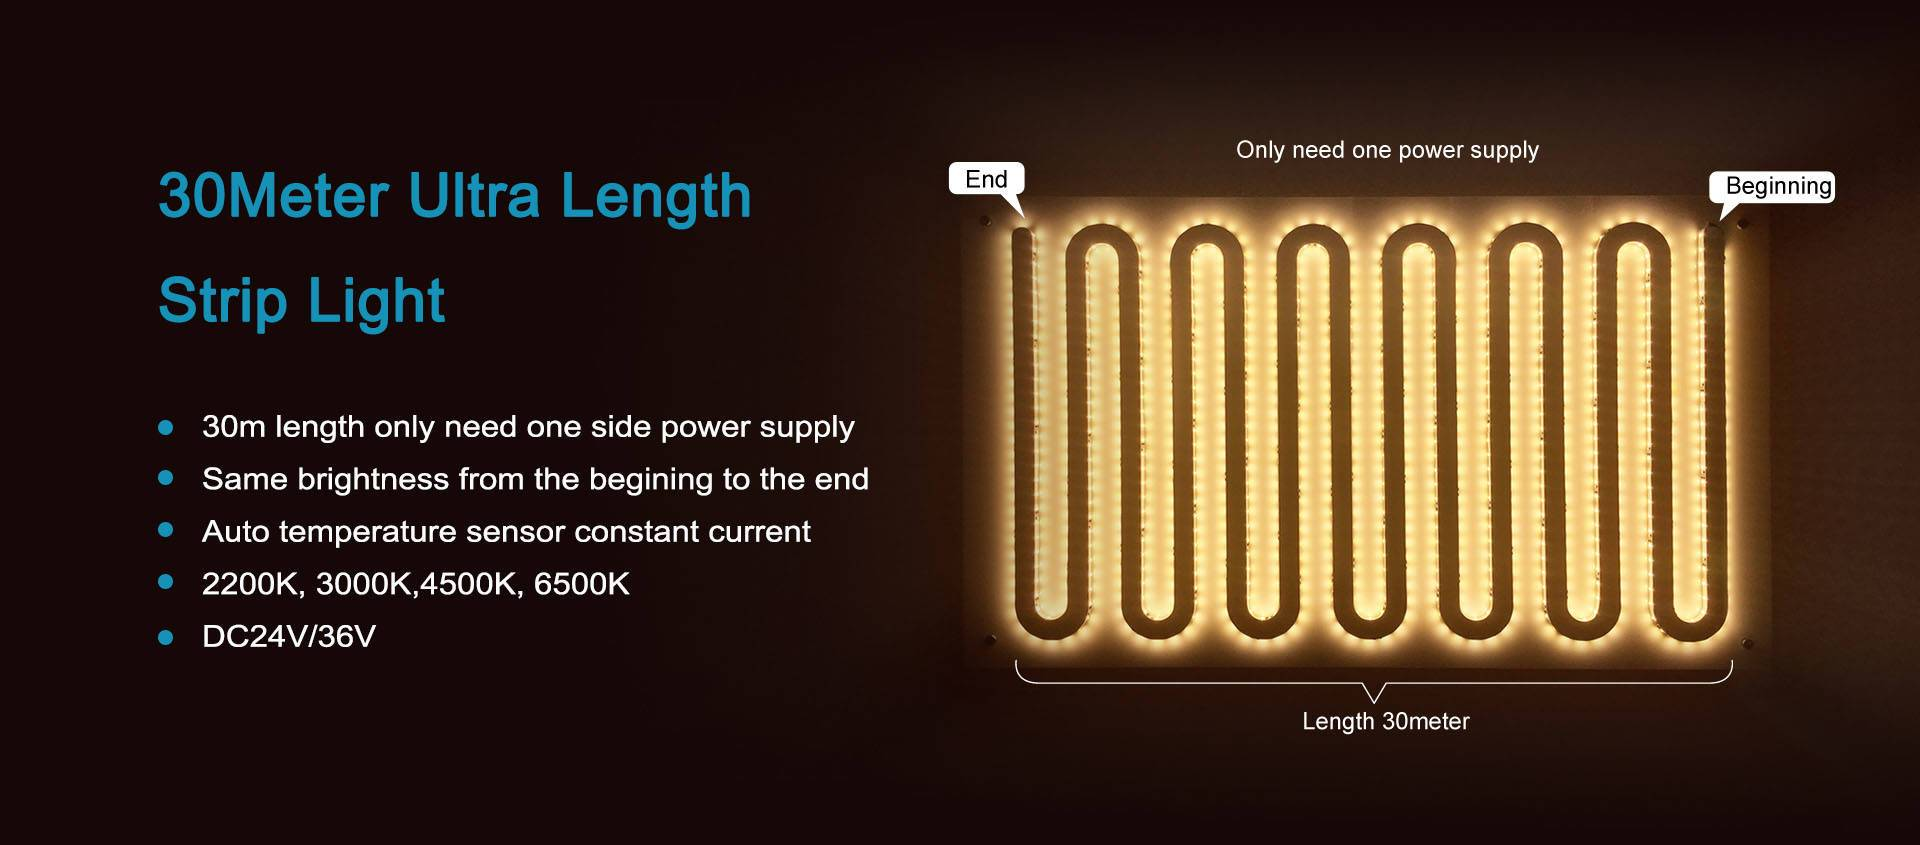 Ultra Length LED Strip